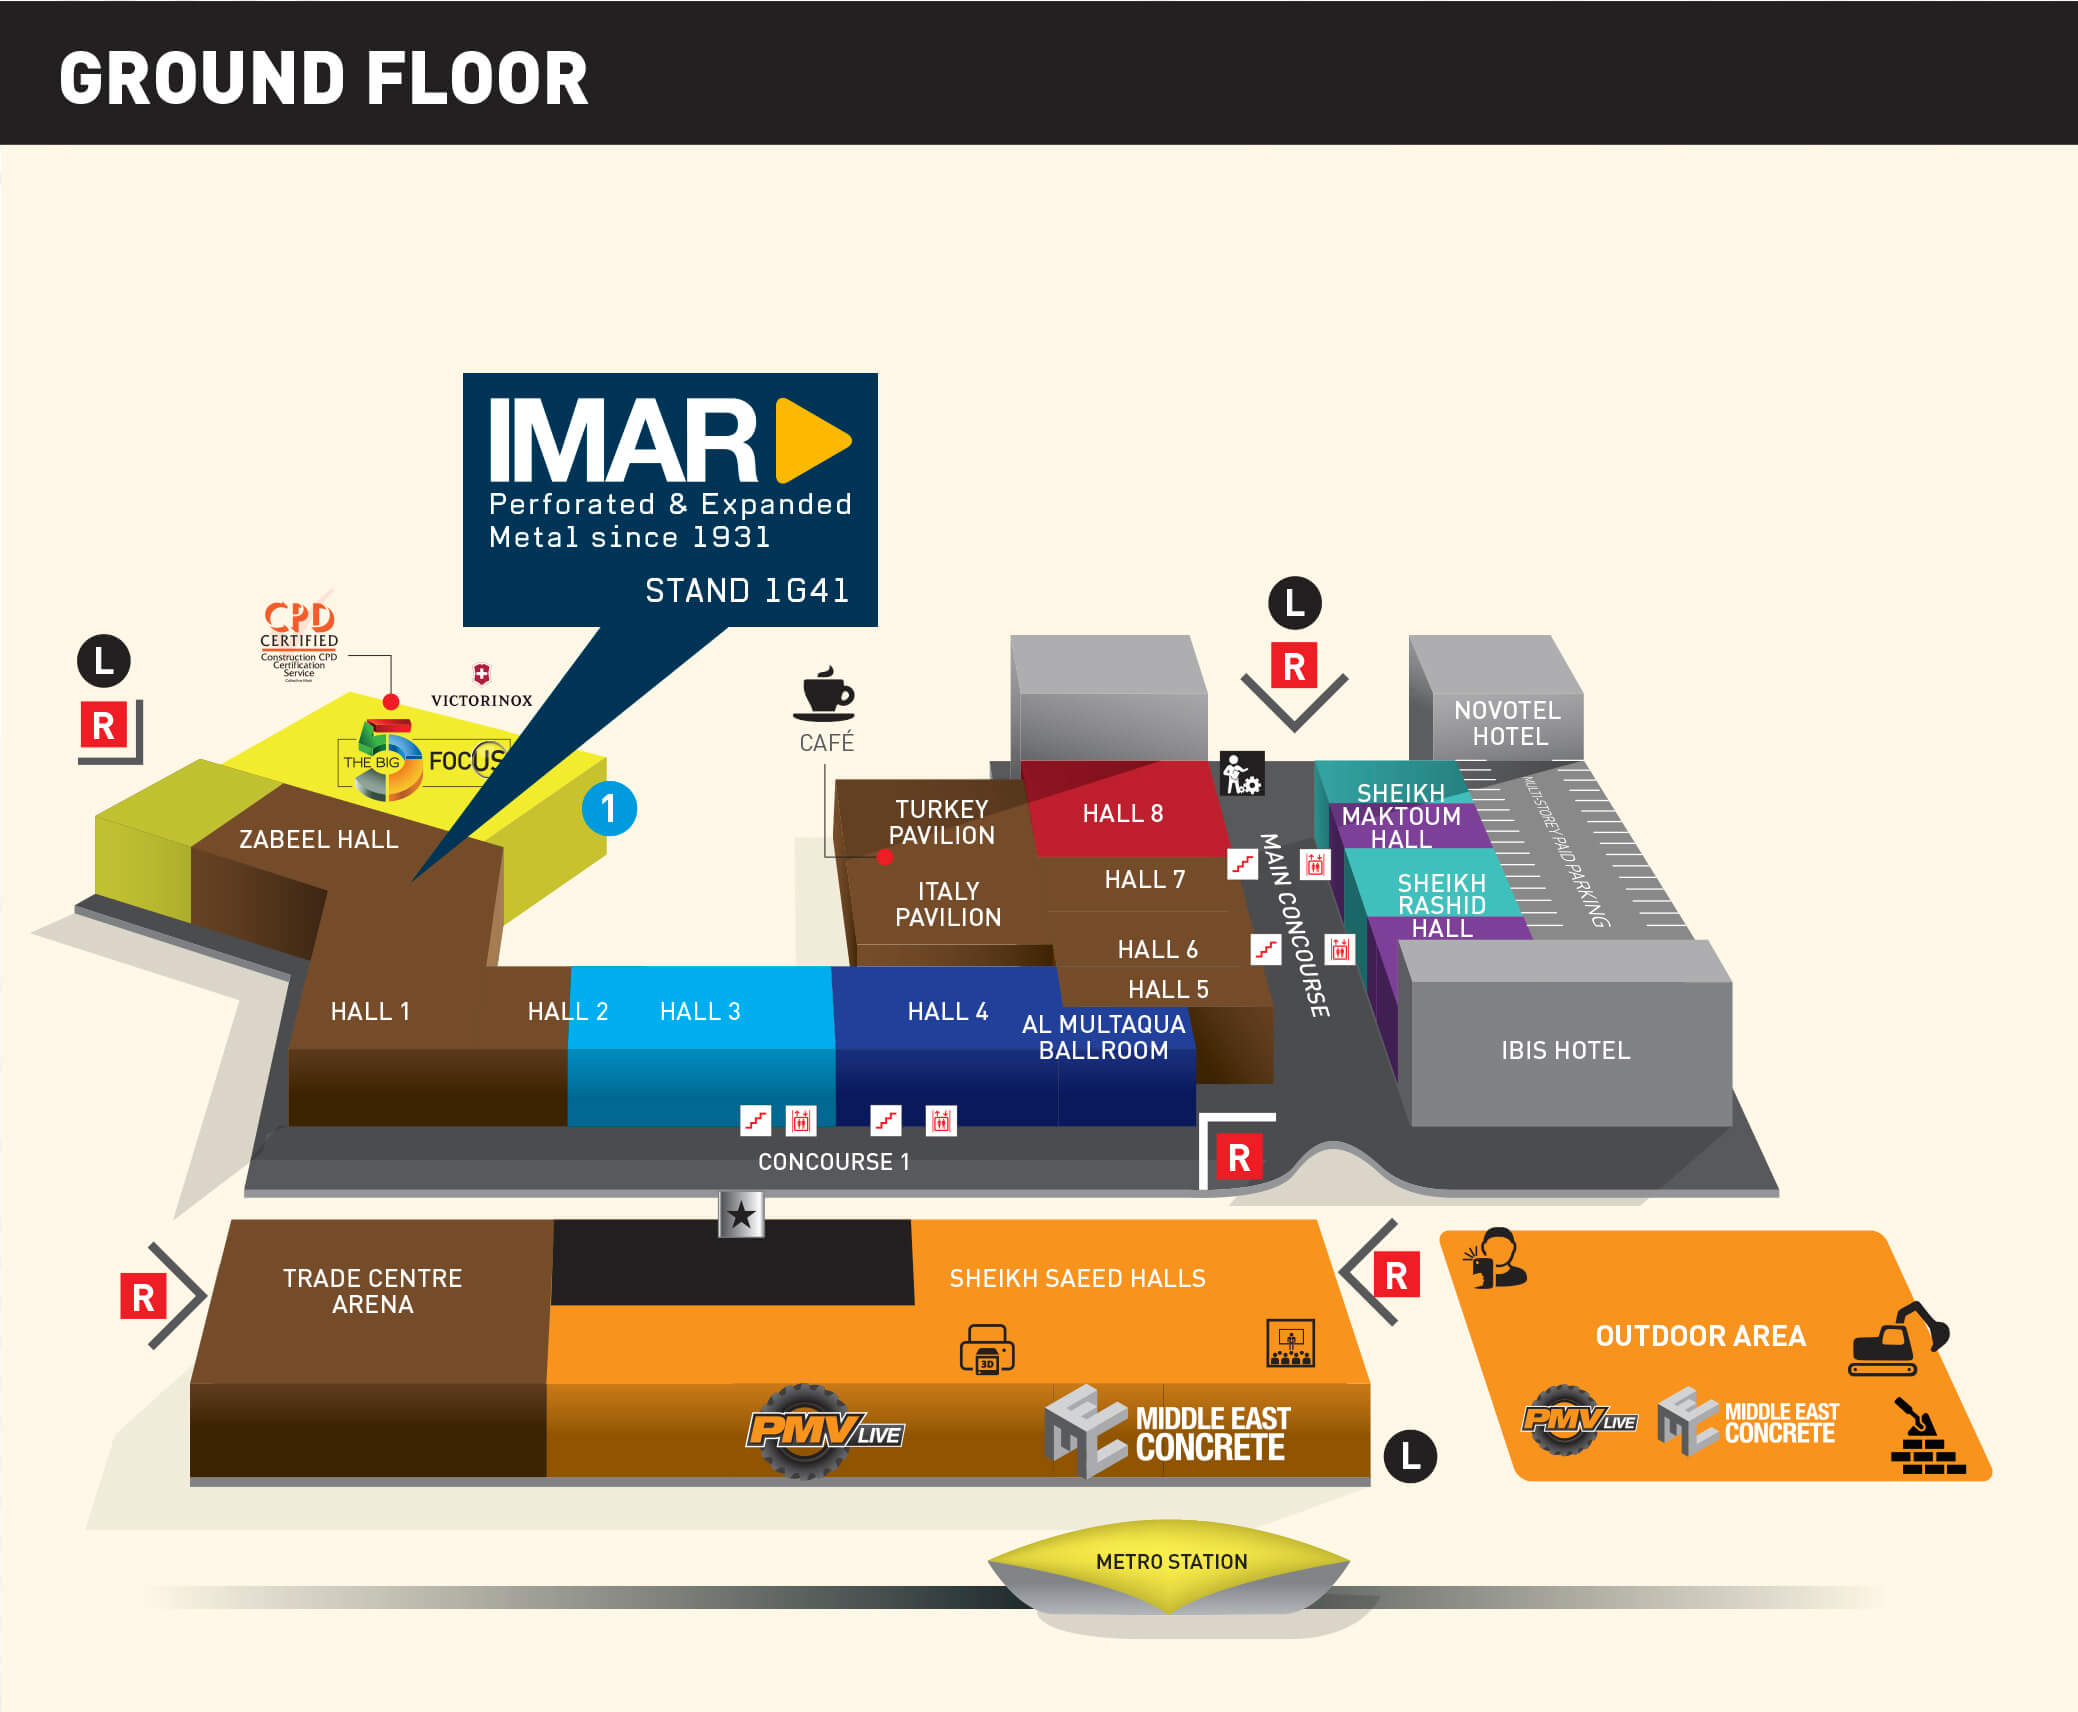 The big 5 Stand Industrias IMAR